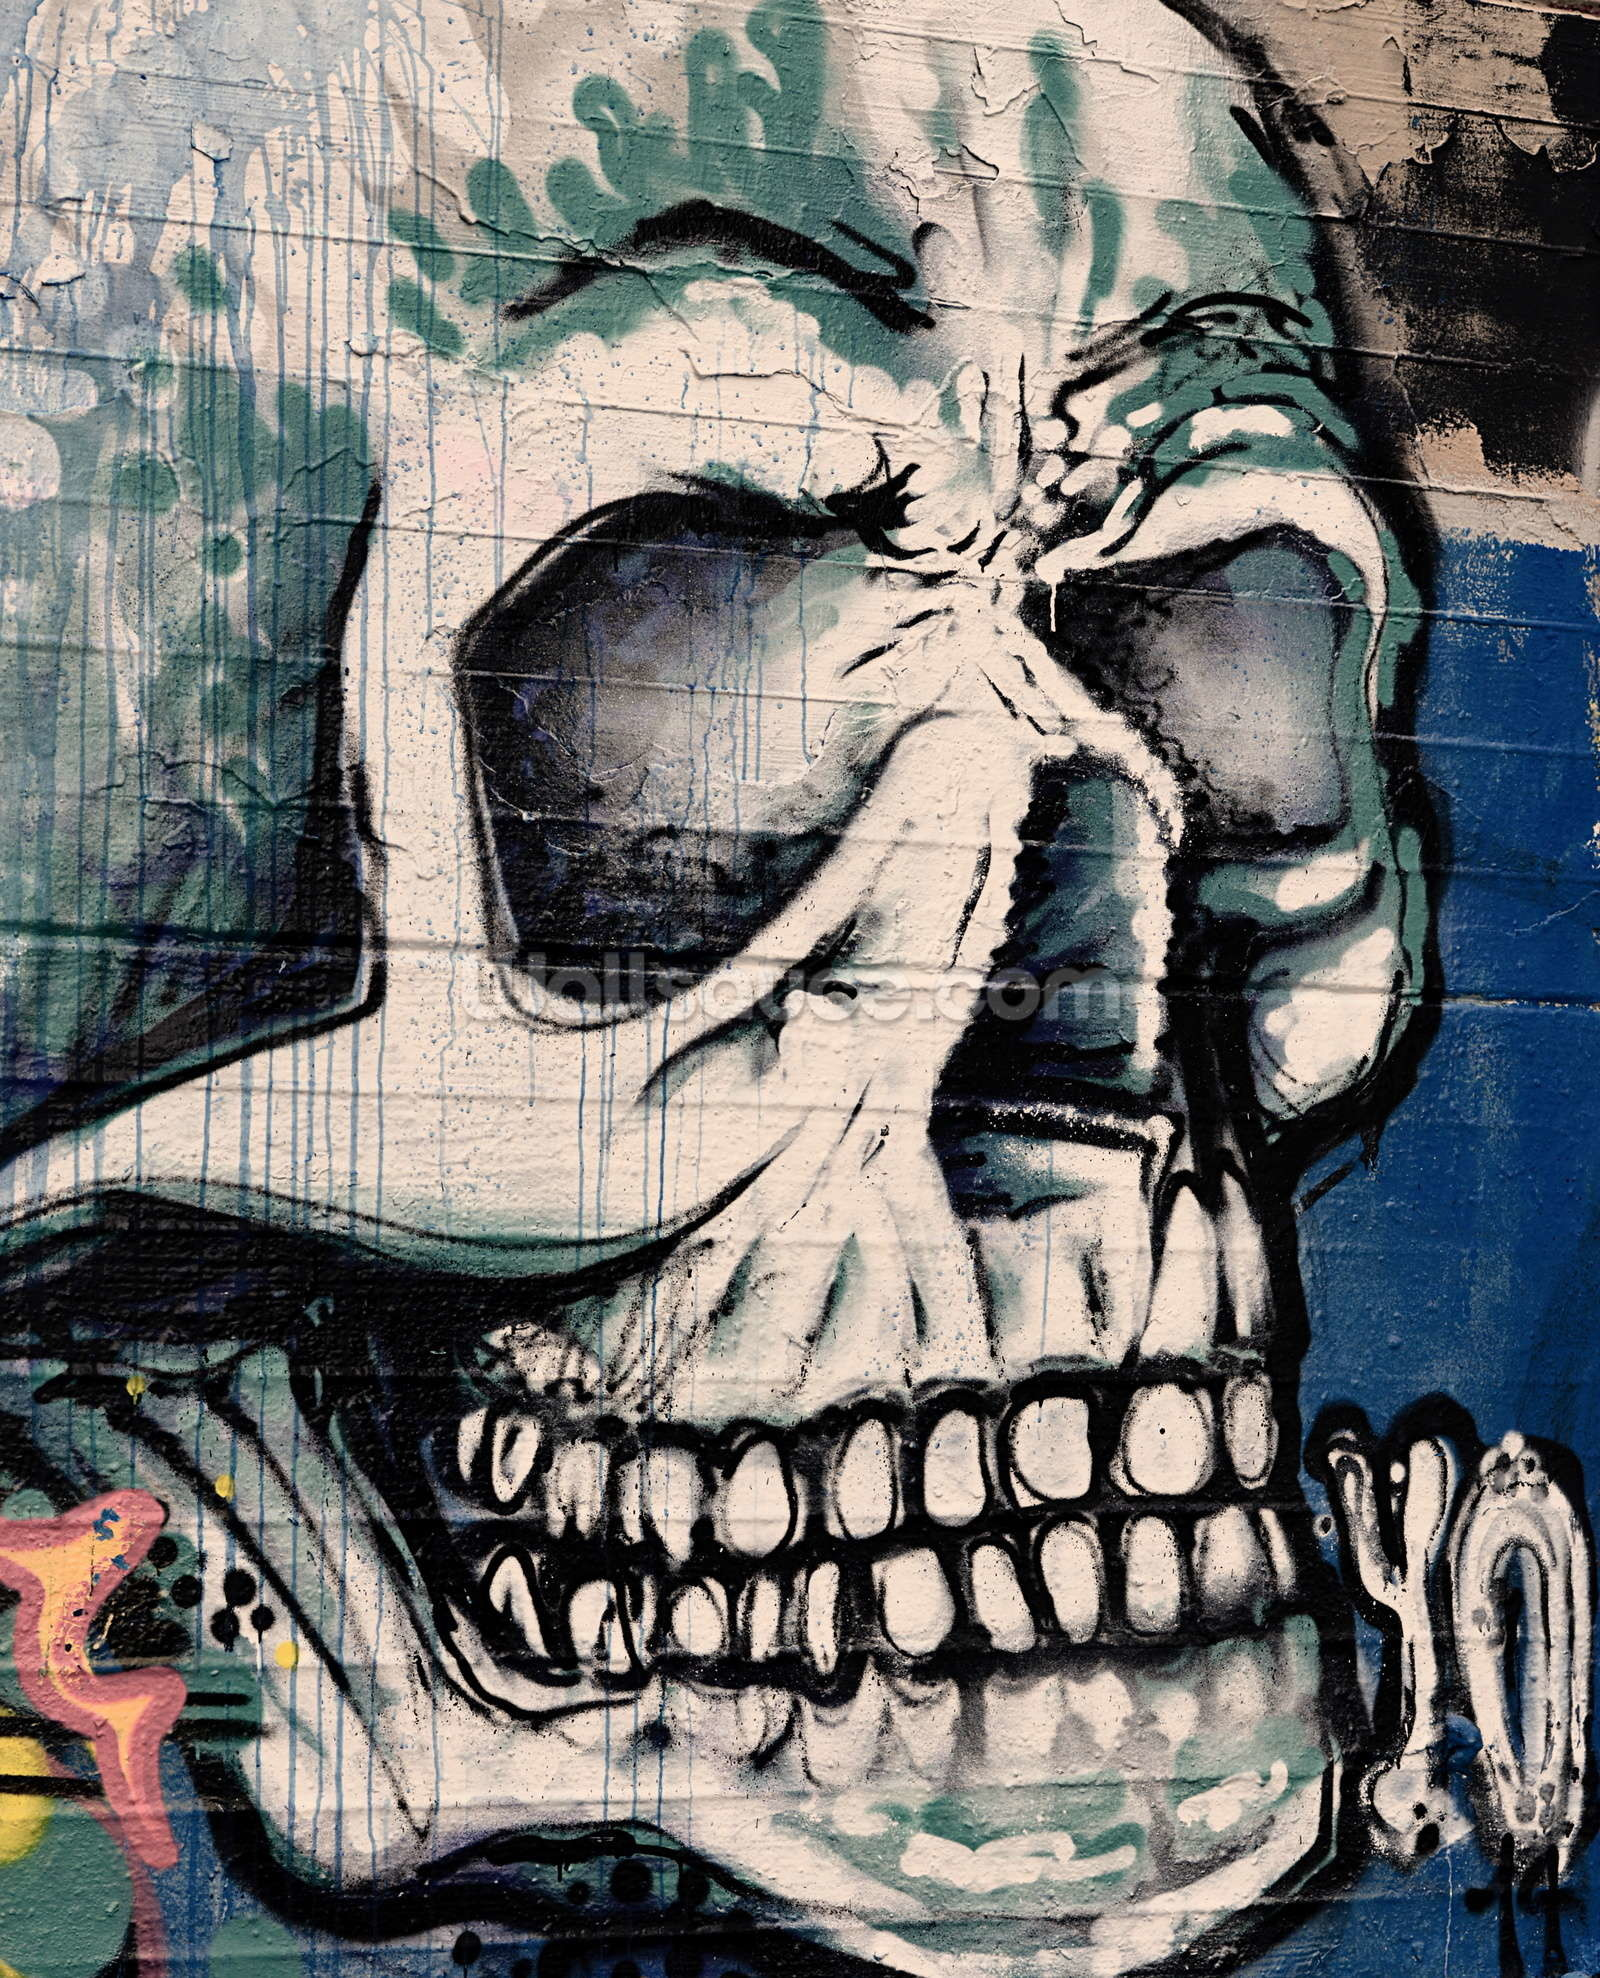 Graffiti – Skull Face Wallpaper Mural